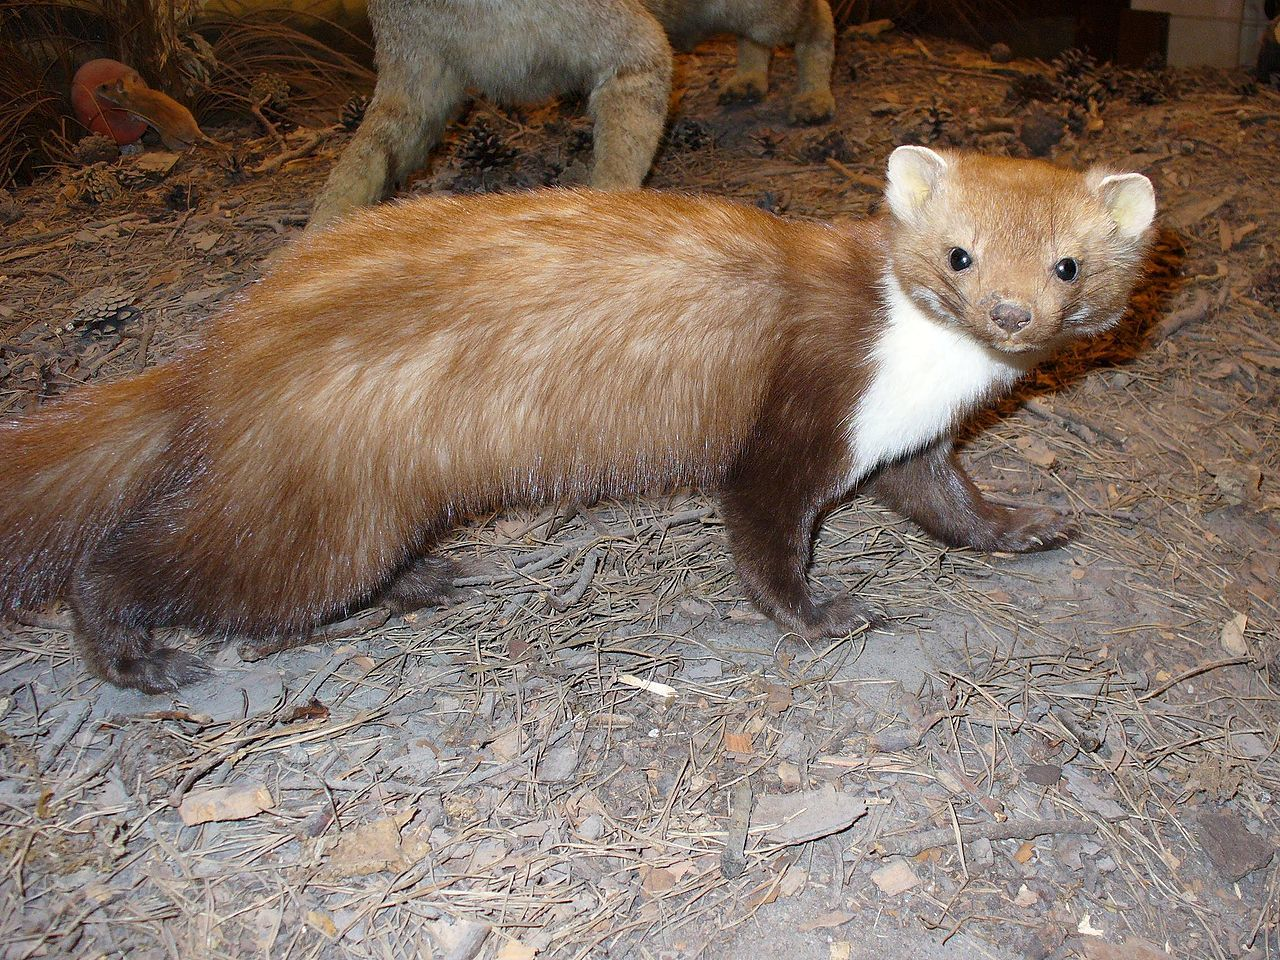 Large Hadron Collider Brought Down by Small Beech Marten